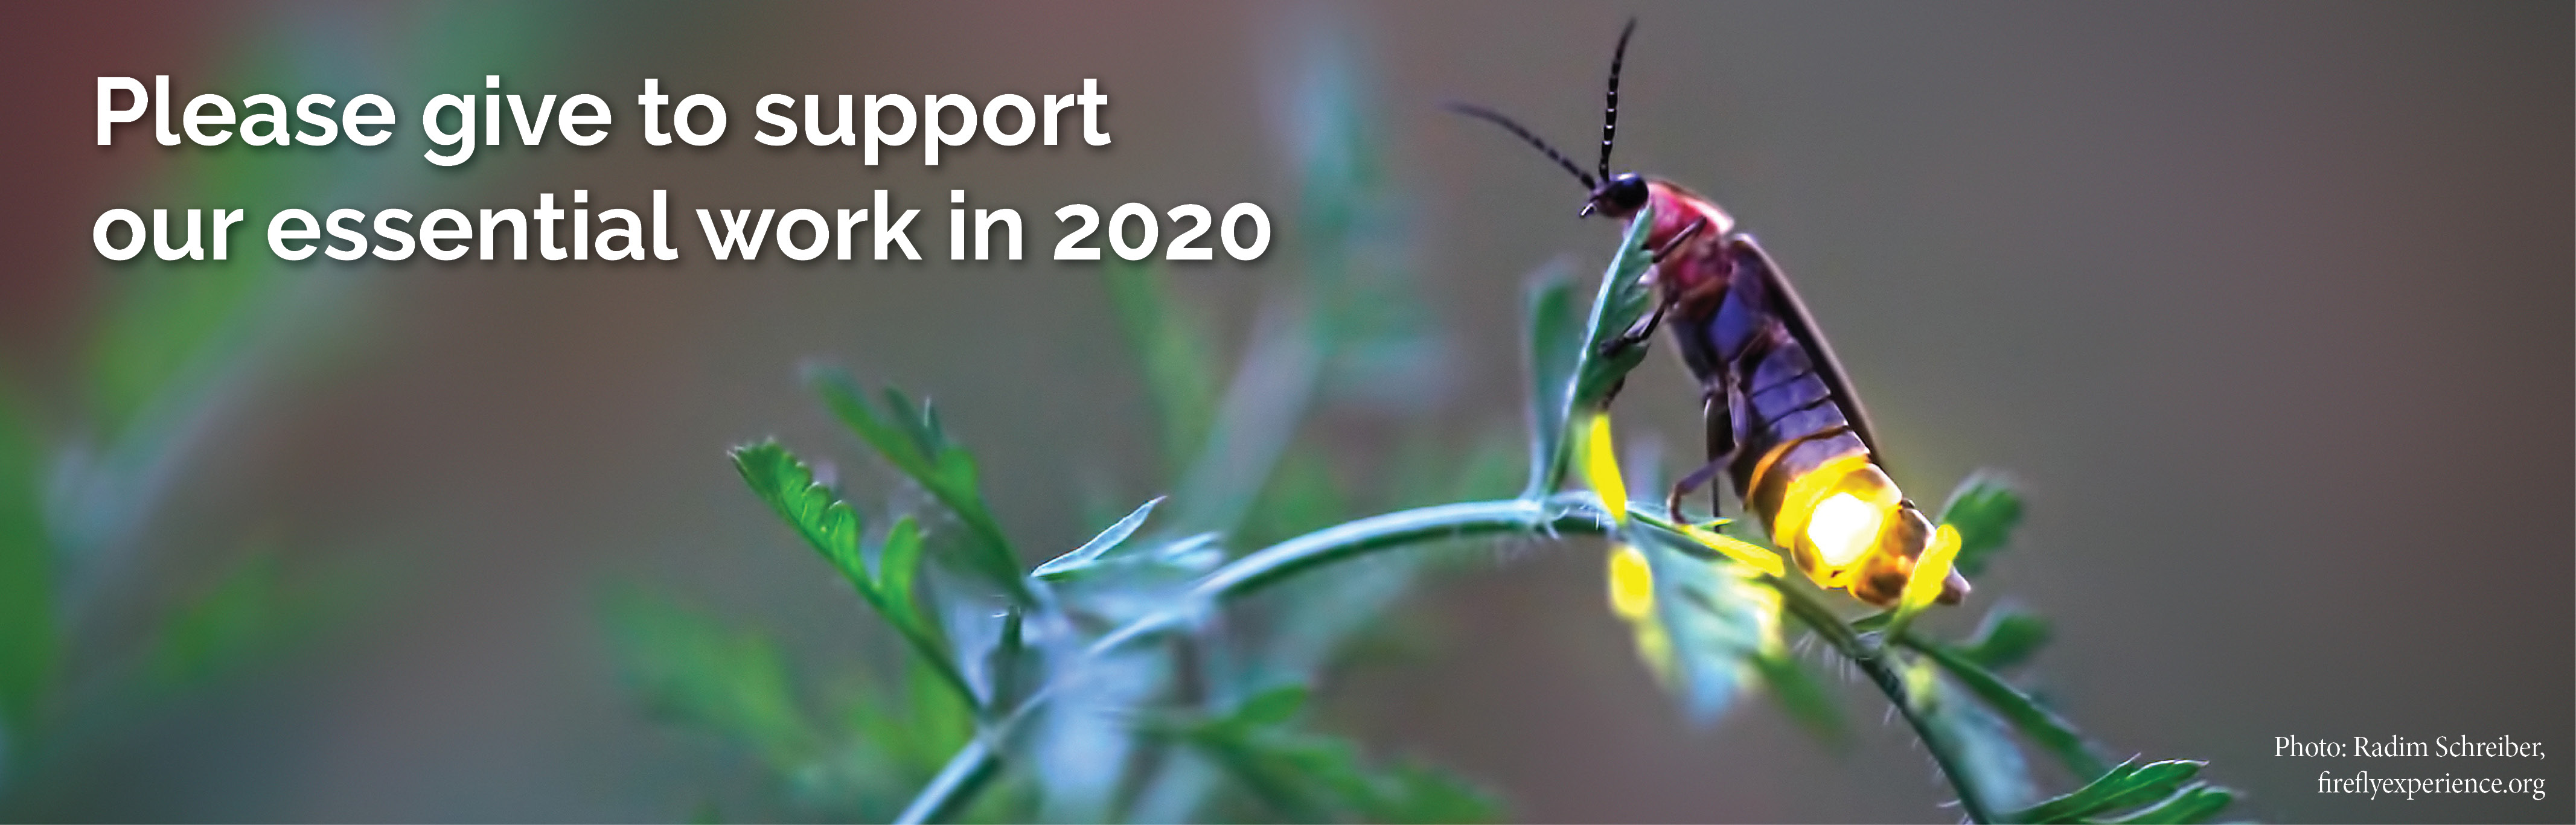 "A firefly with a dark purple, shiny body flashes yellow as it perches atop a green, floppy stem. The text reads: ""Please give to support our essential work in 2020."""